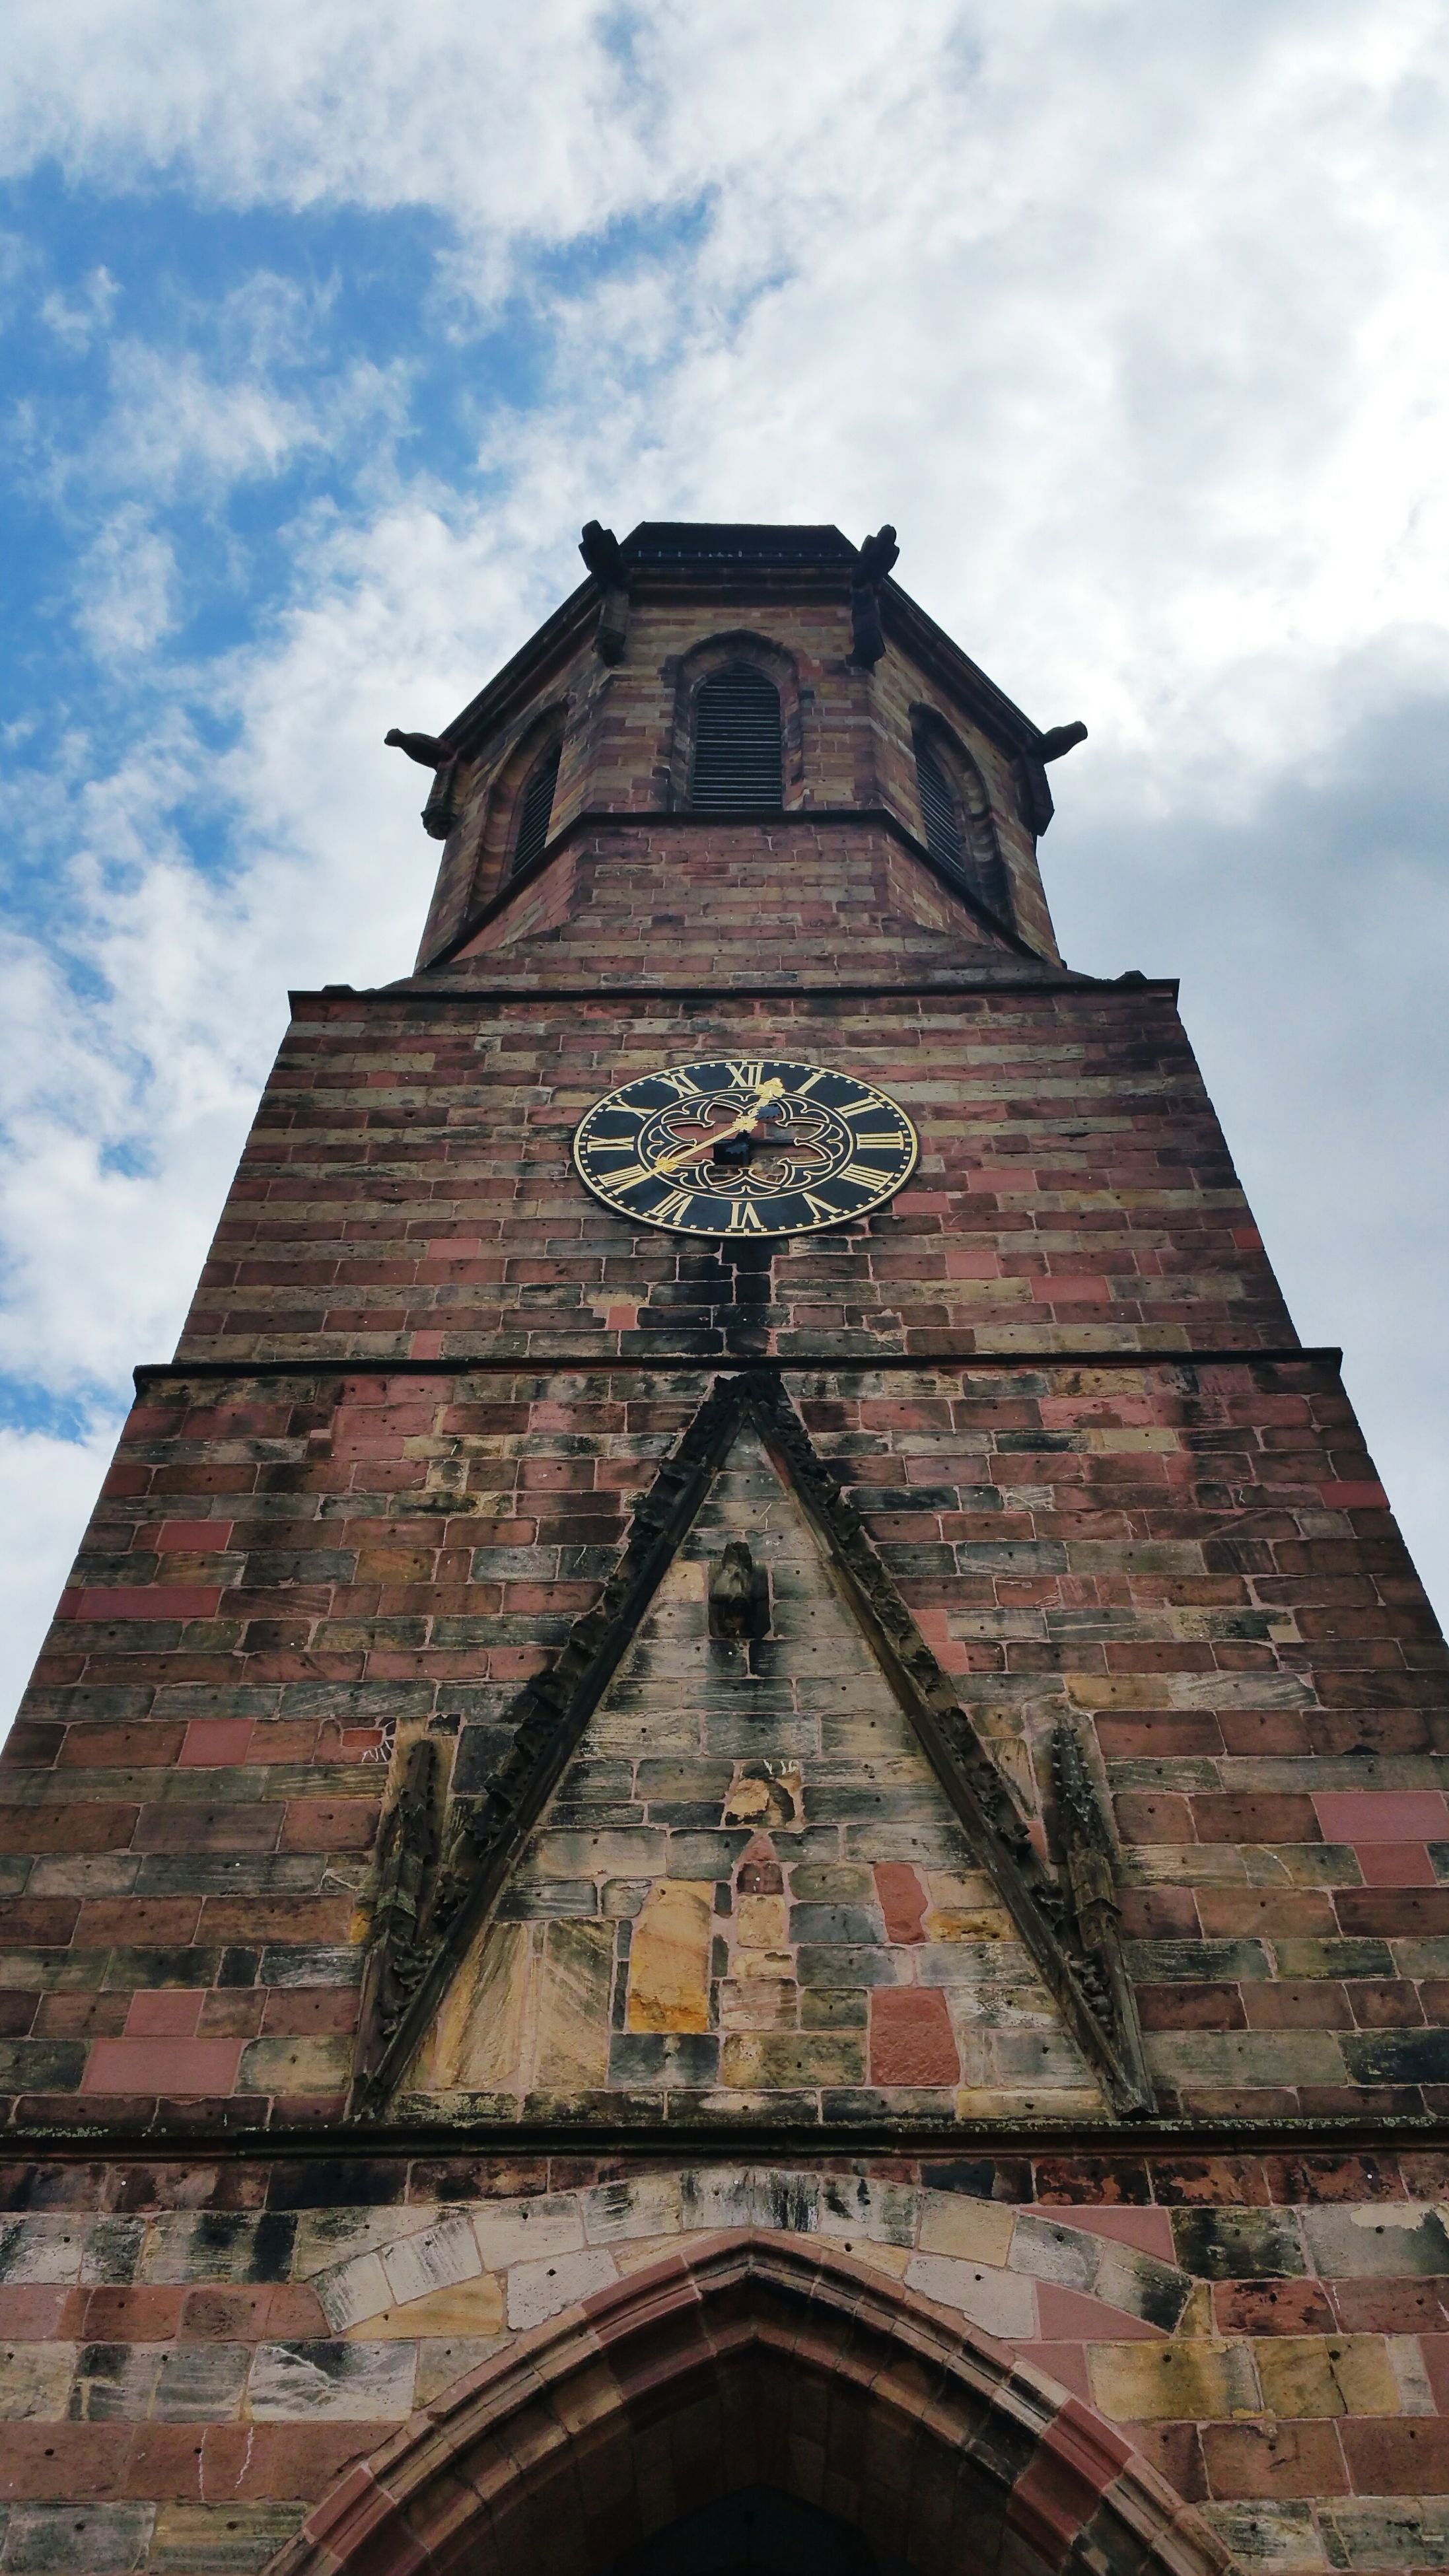 architecture, building exterior, built structure, low angle view, religion, church, place of worship, sky, spirituality, clock tower, clock, cross, cathedral, history, cloud - sky, tower, time, facade